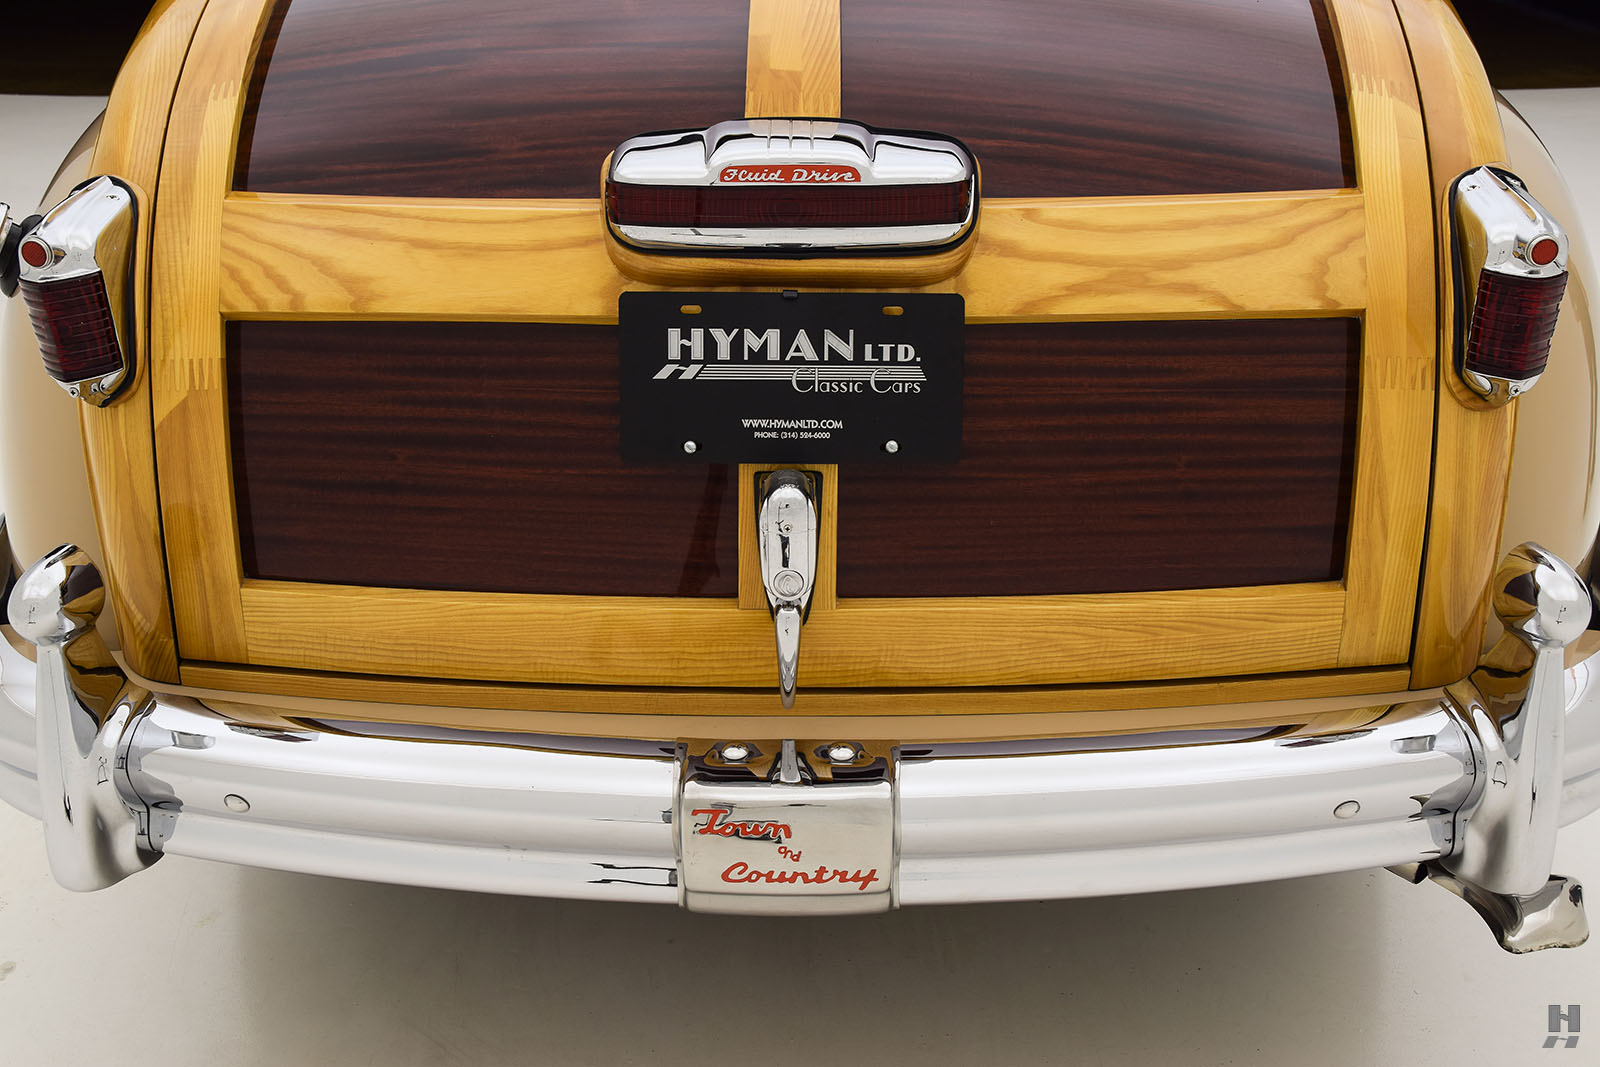 1947 Chrysler Town Country Convertible Hyman Ltd Classic Cars 1949 And Hubcaps Car For Sale Buy